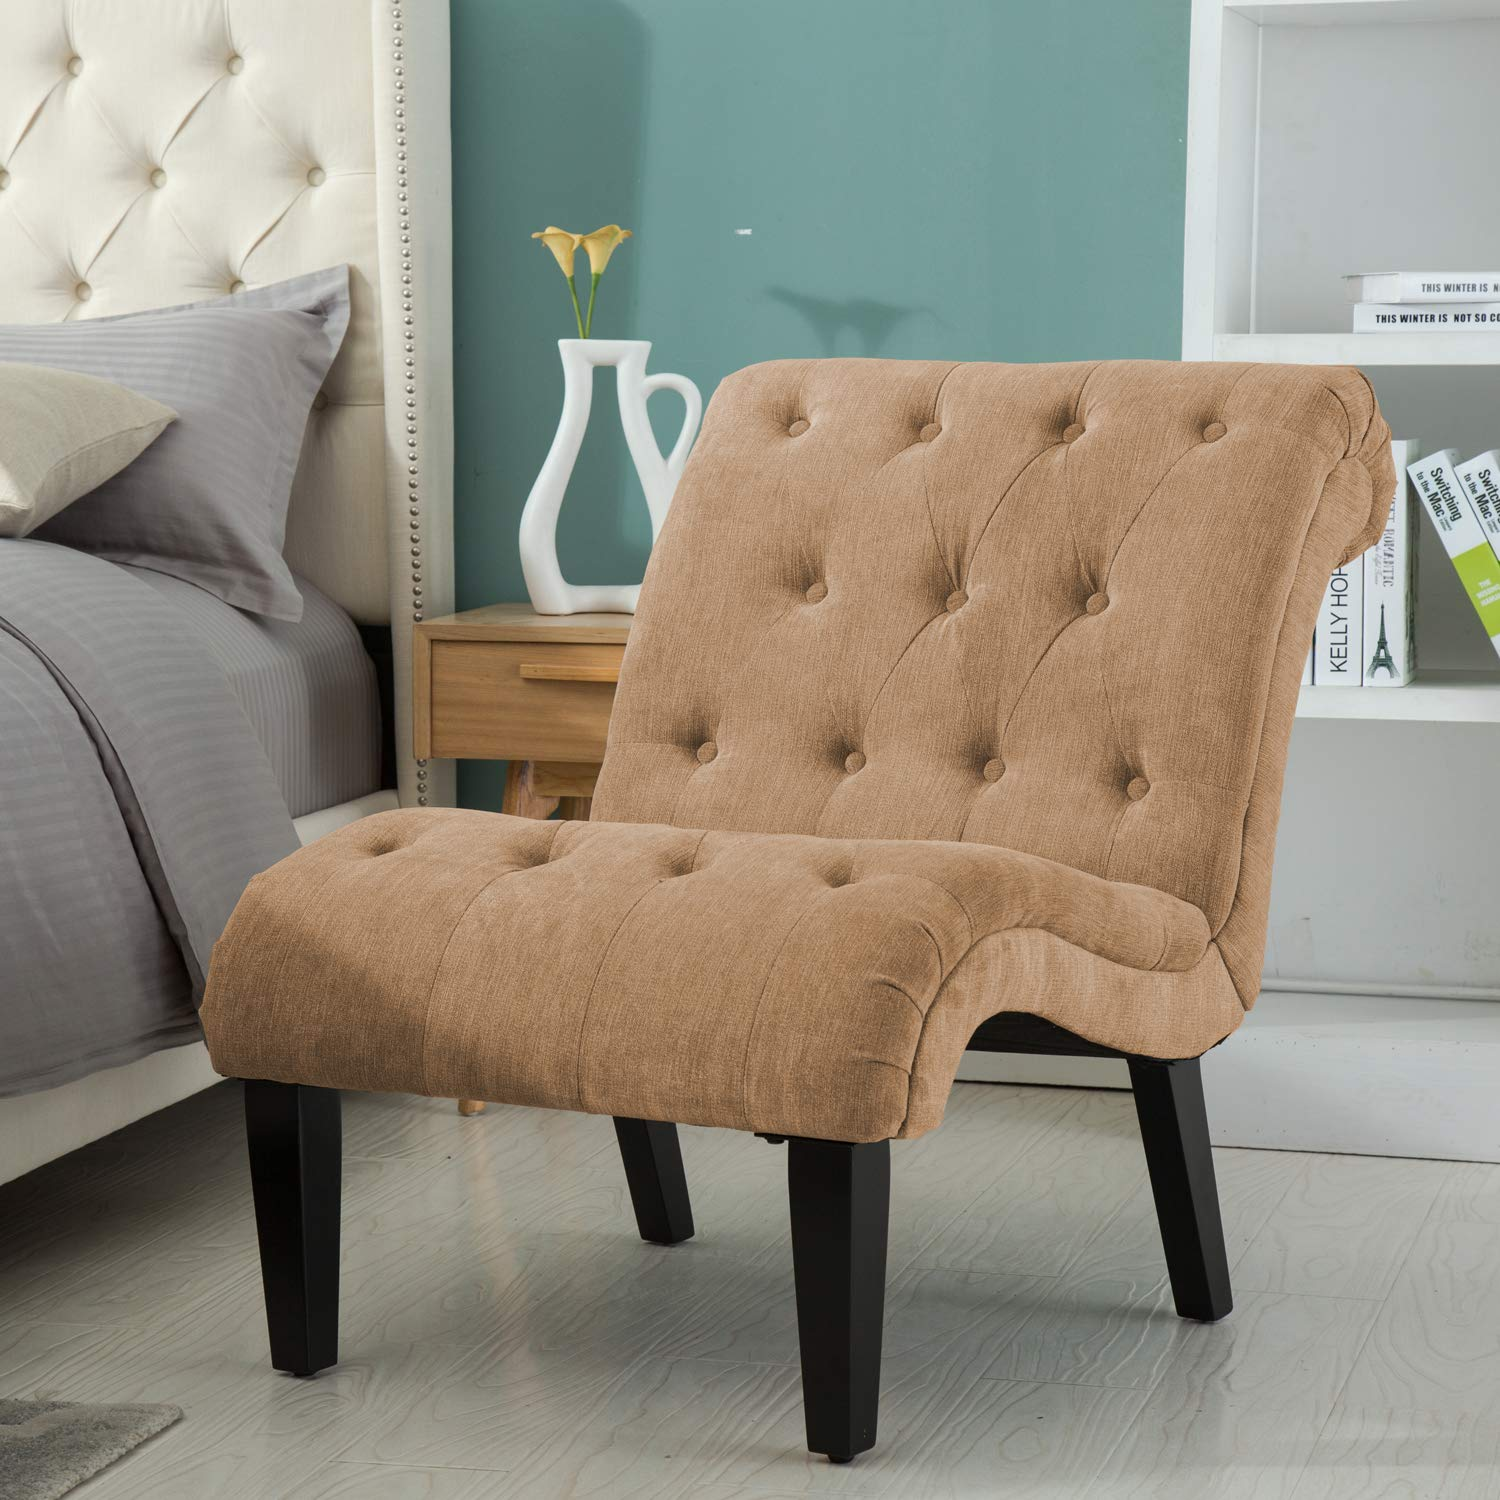 YongQiang Living Room Chair Fabric Upholstered Bedroom Accent Chair  Backrest Lounge Chairs with Solid Wood Legs